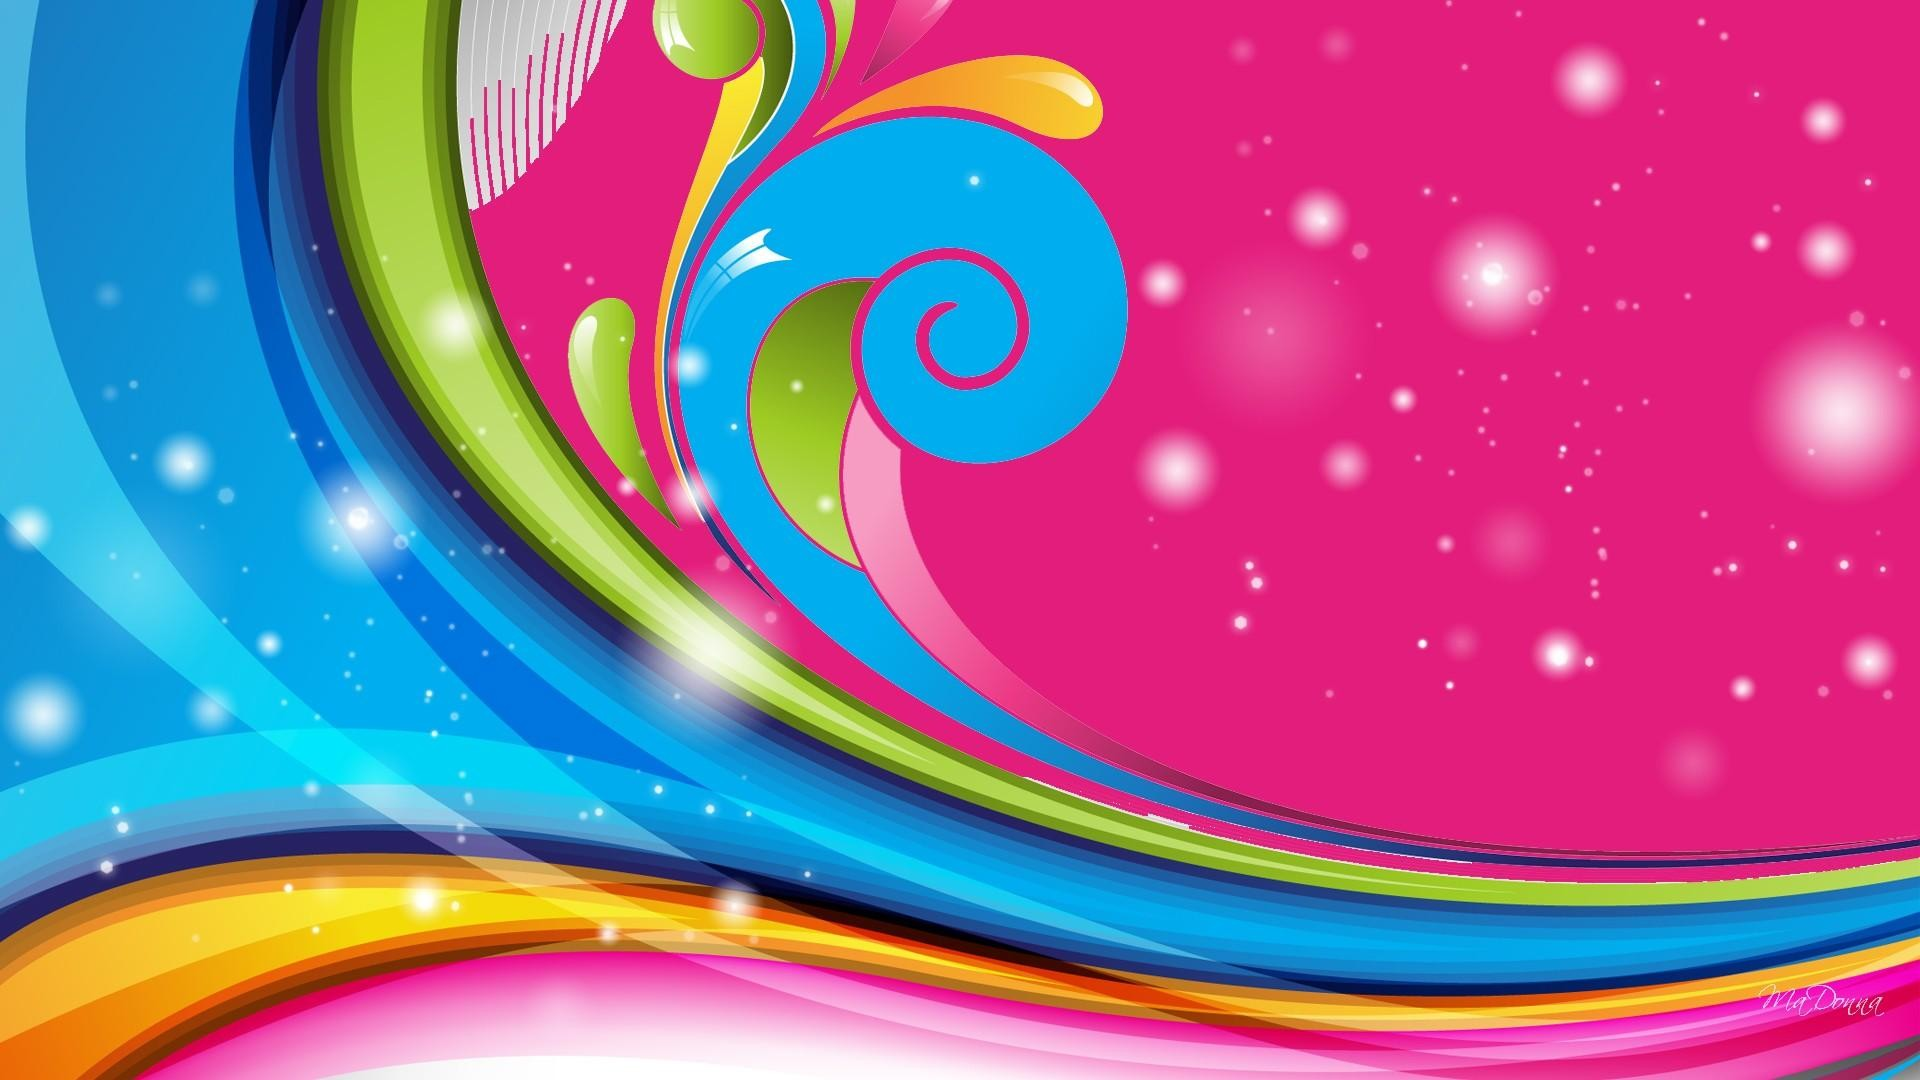 … color wallpapers ozon4life …